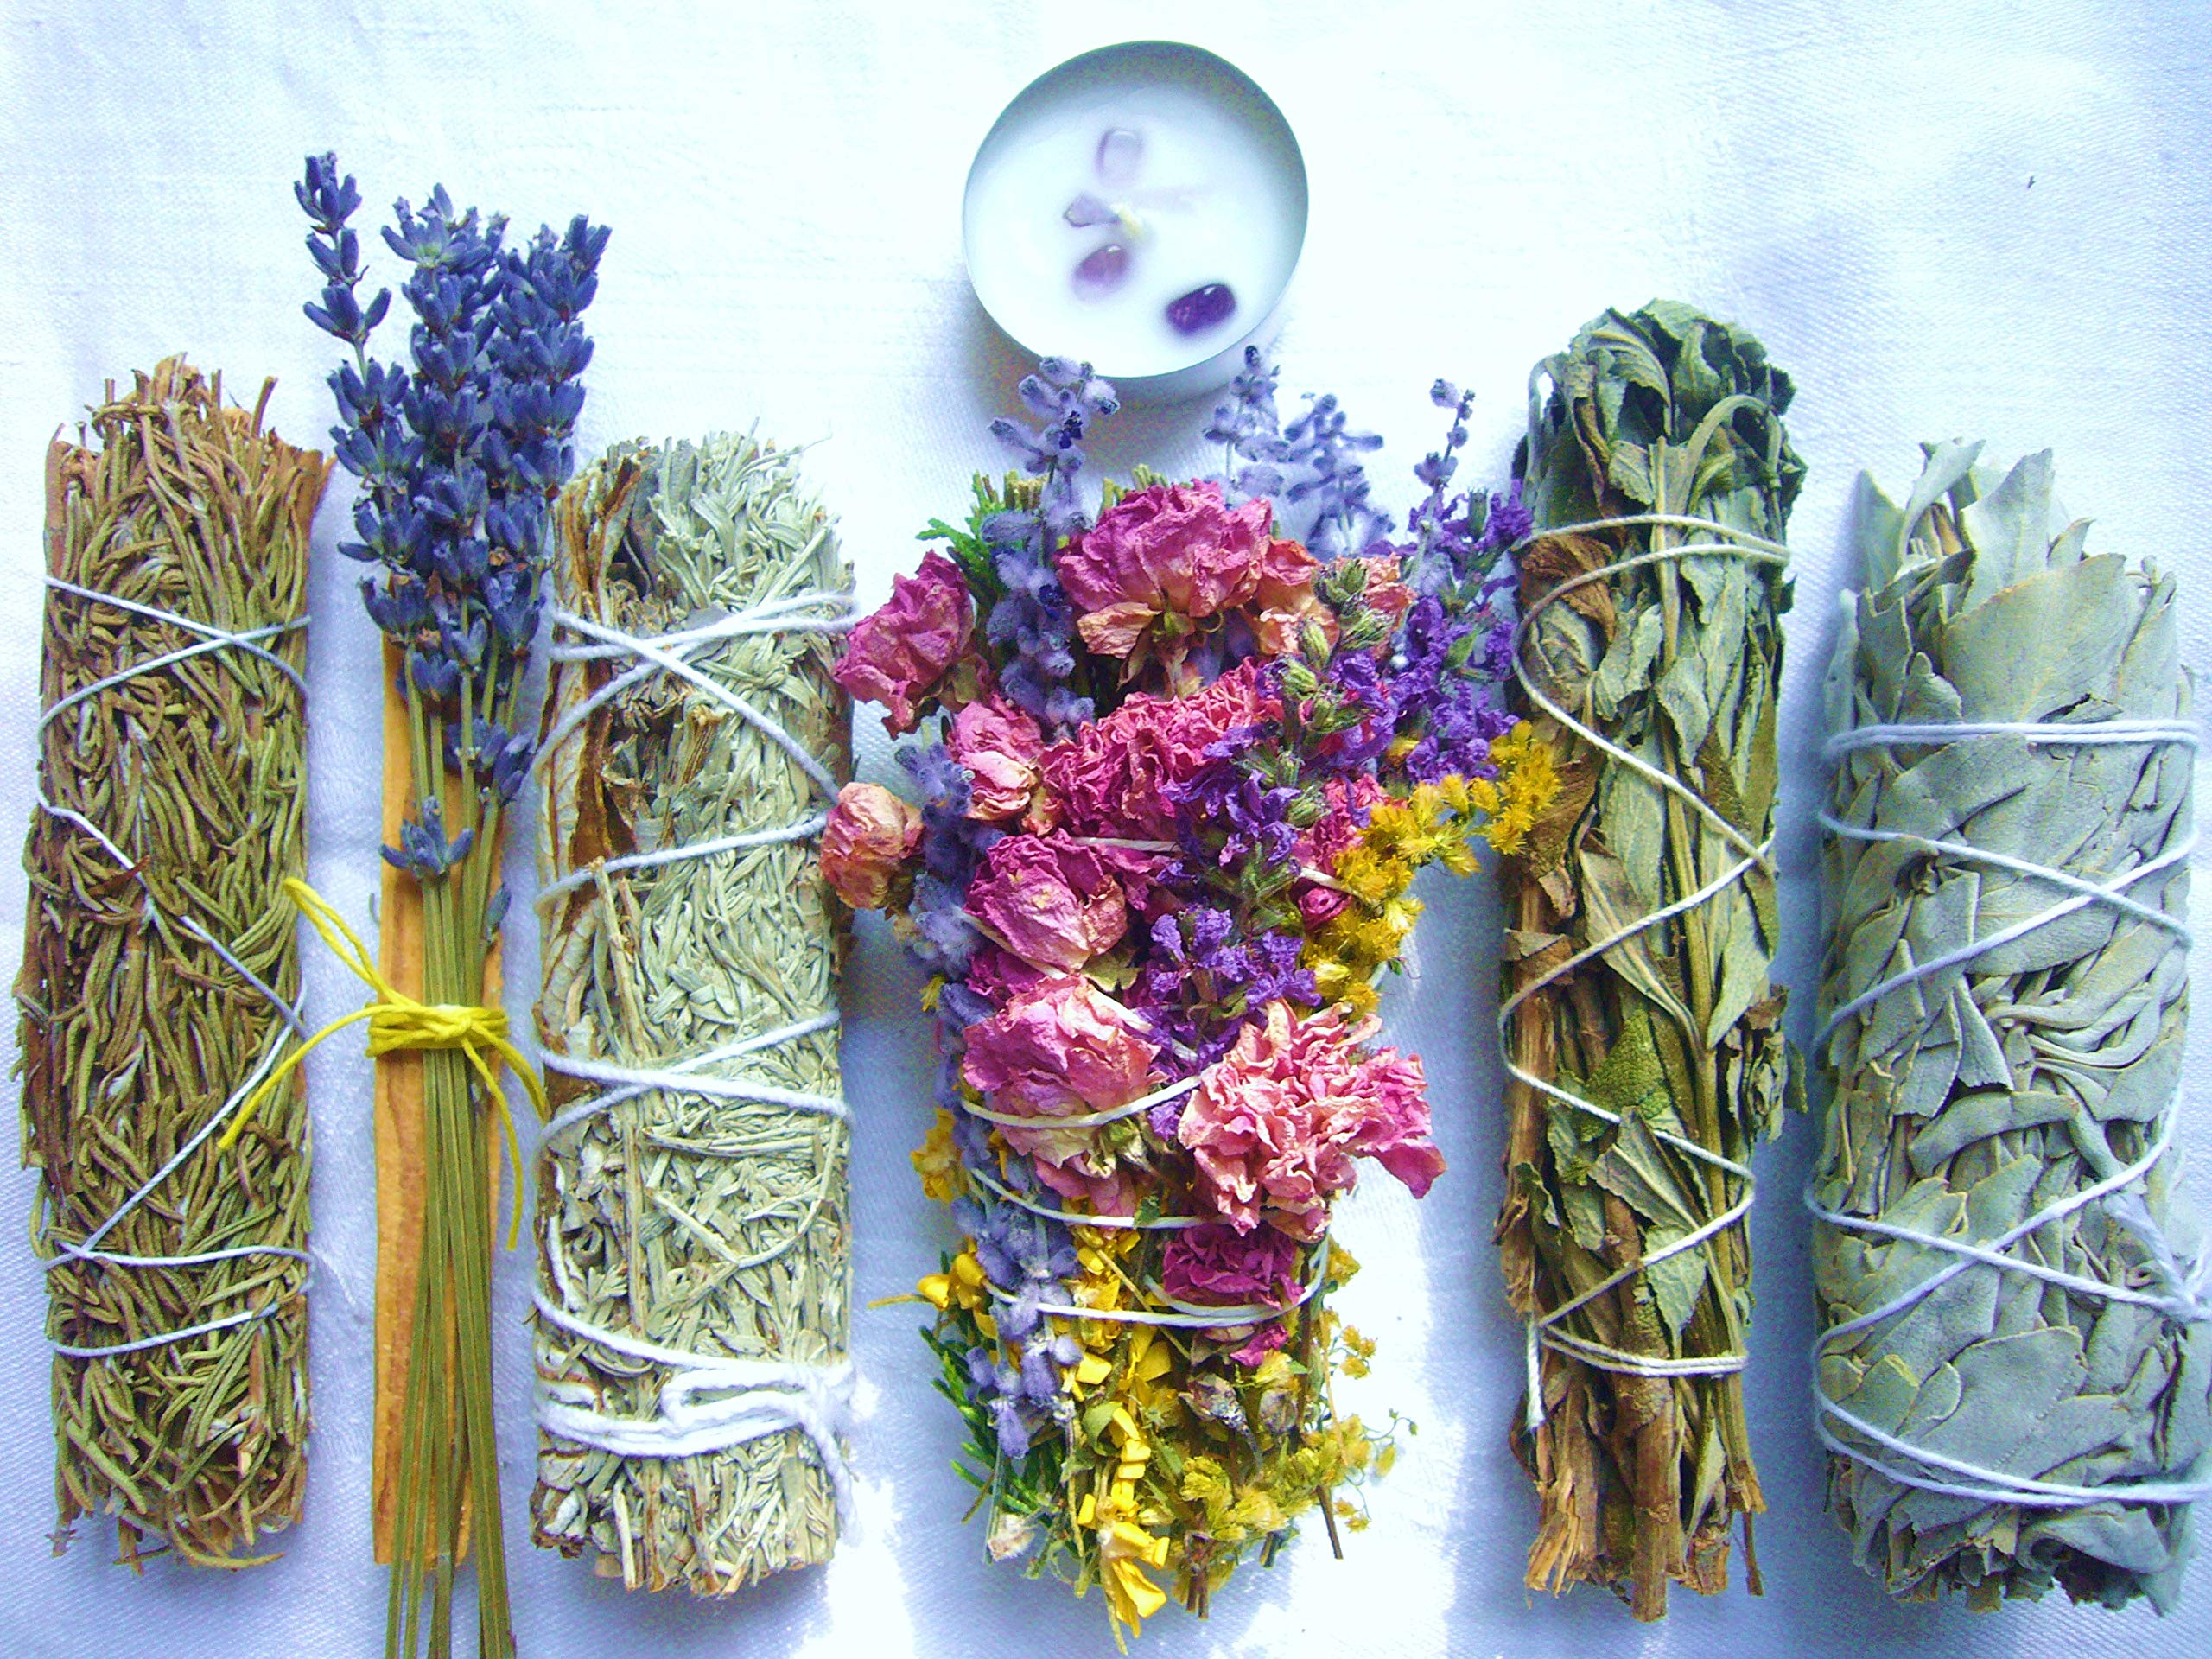 Luxury Smudge Kit | Wild Top Floral Wand, Rosemary, Lavender Smudge Stick, Yerba Santa & Blue Sage, White Sage, Palo Santo, Crystal Candle | Home Cleansing, Blessing, Manifesting, Rituals by L'AMOUR yes!